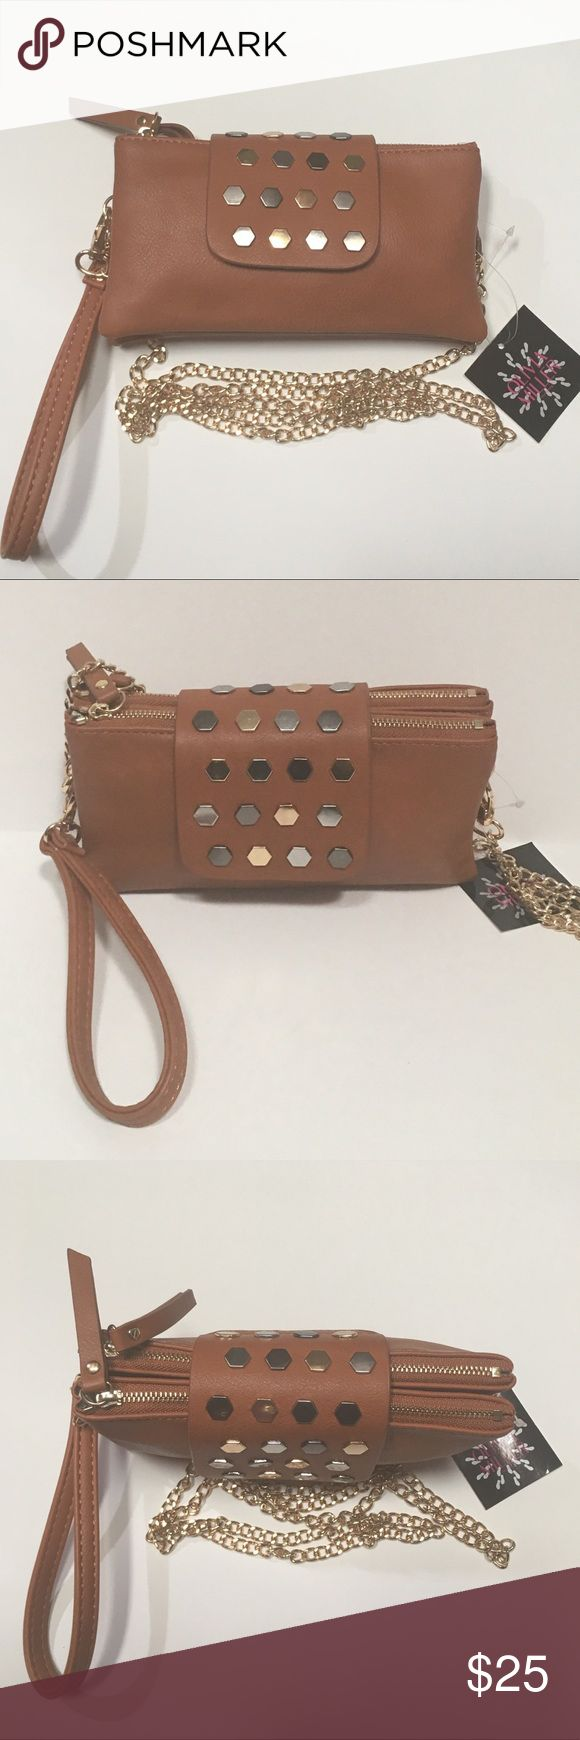 🆕Wristlet With Detachable Shoulder Strap Versatile wristlet with lots of compartments. 6 pockets on each zipper compartment. 6 and 7 plus Apple phone can fit with a thin phone cover or no cover at all. 7 inches width and 4 inches height. Detachable Shoulder Strap is 22 inches Shoulder Drop. This can be worn cross body if needed. Olivia Miller Bags Clutches & Wristlets